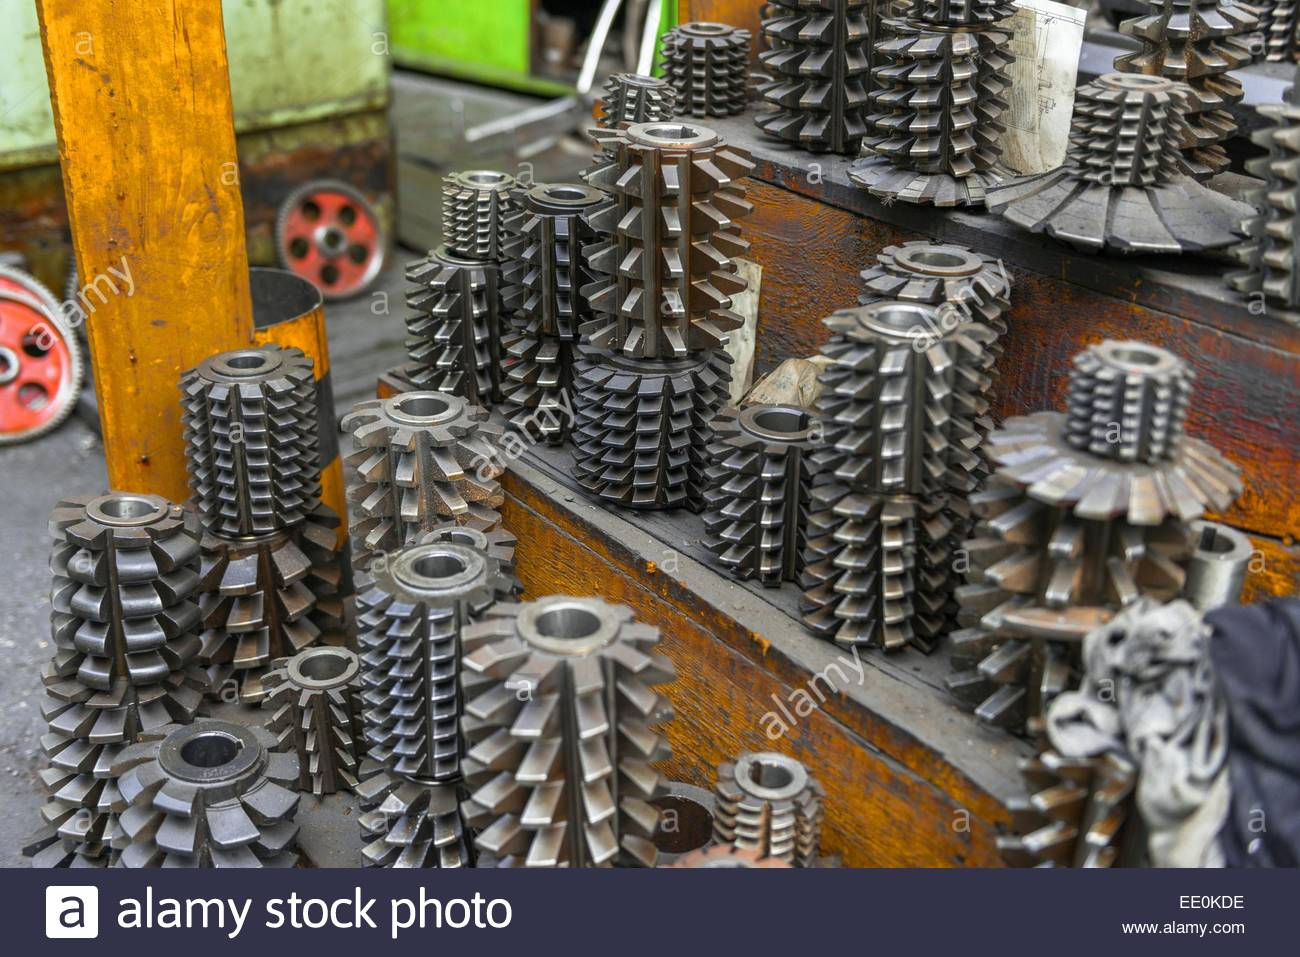 Industrial drill bits stacked up - Stock Image